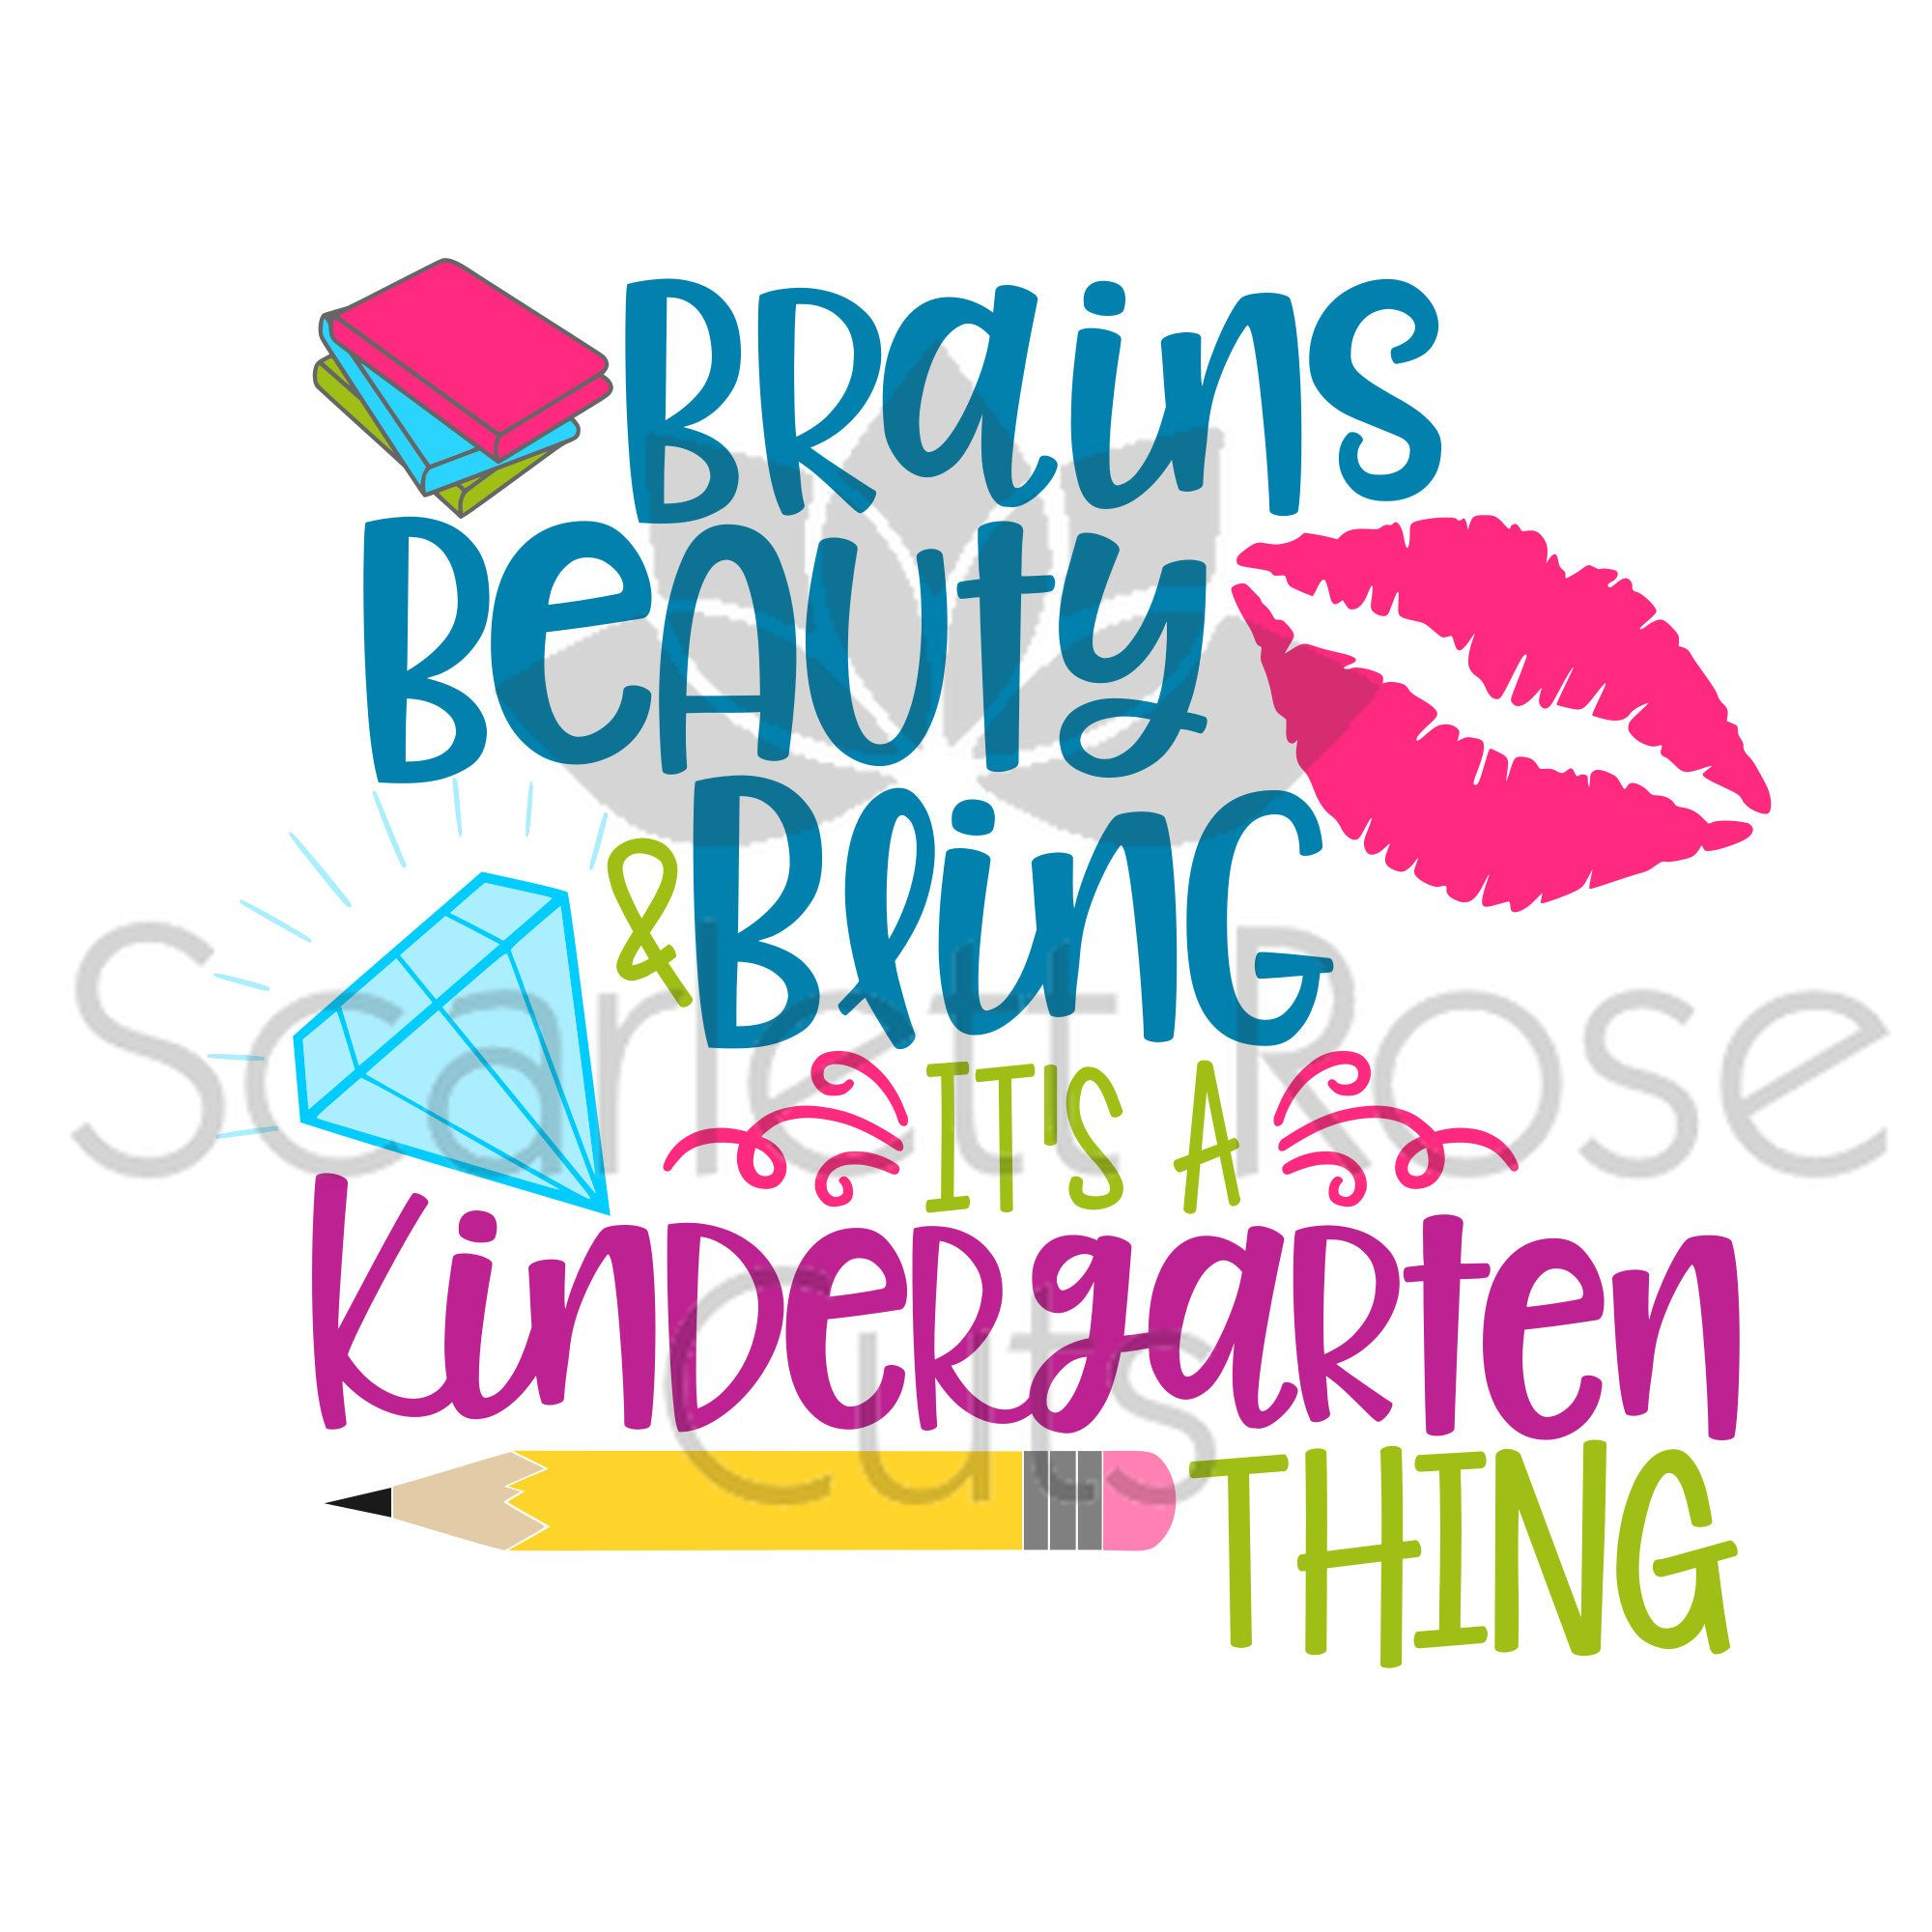 School Svg, Brains Beauty And Bling Kindergarten Thing Svg